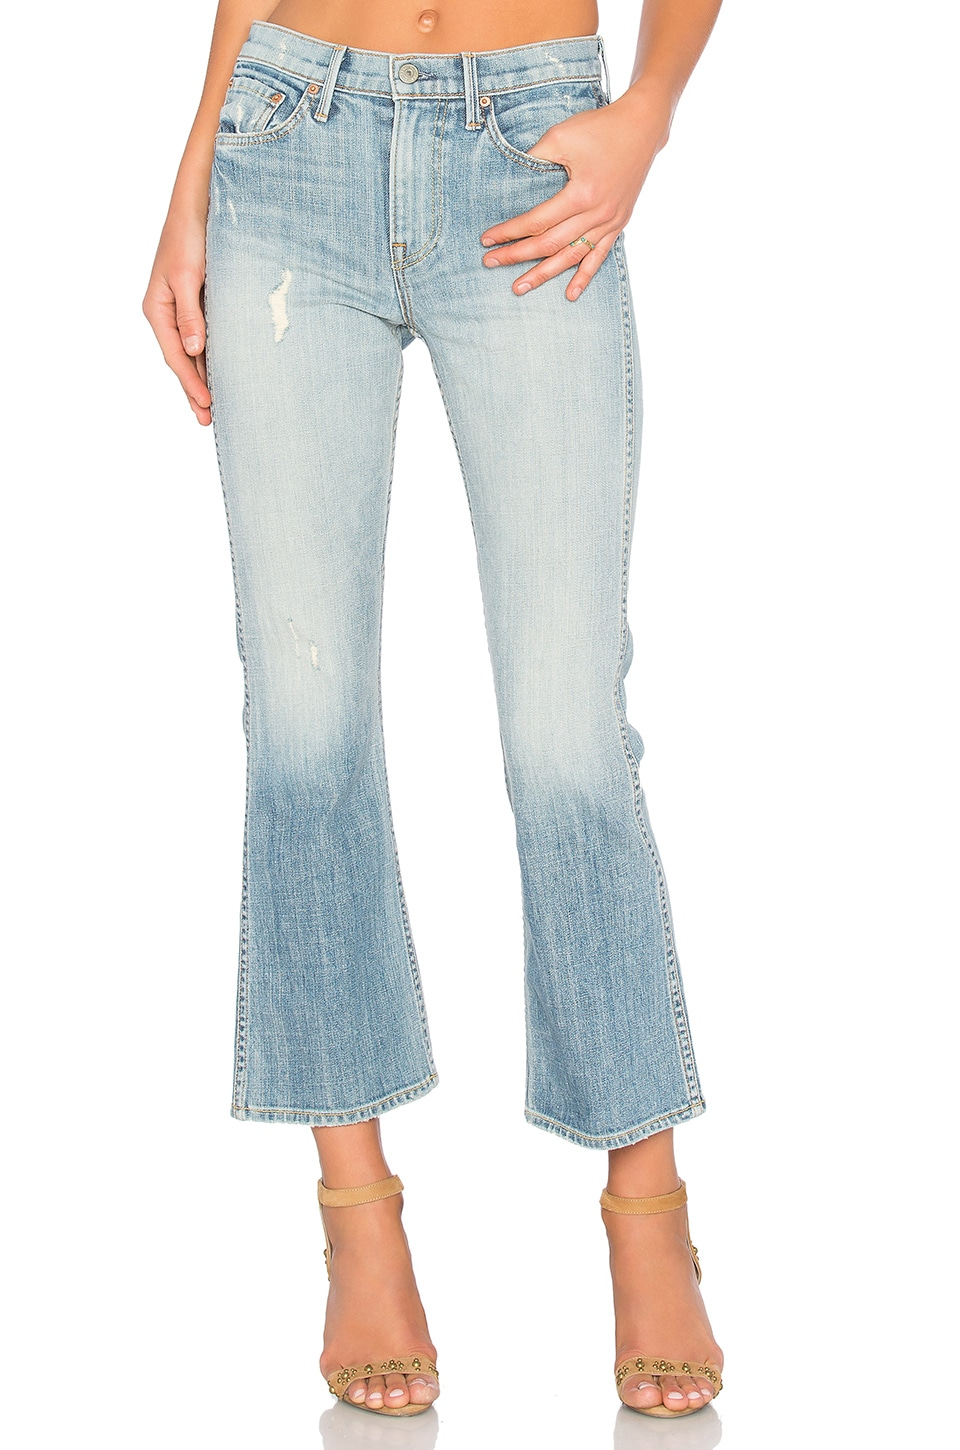 GRLFRND Joan Mid-Rise Crop Flare Jean in Love to Love You, Baby